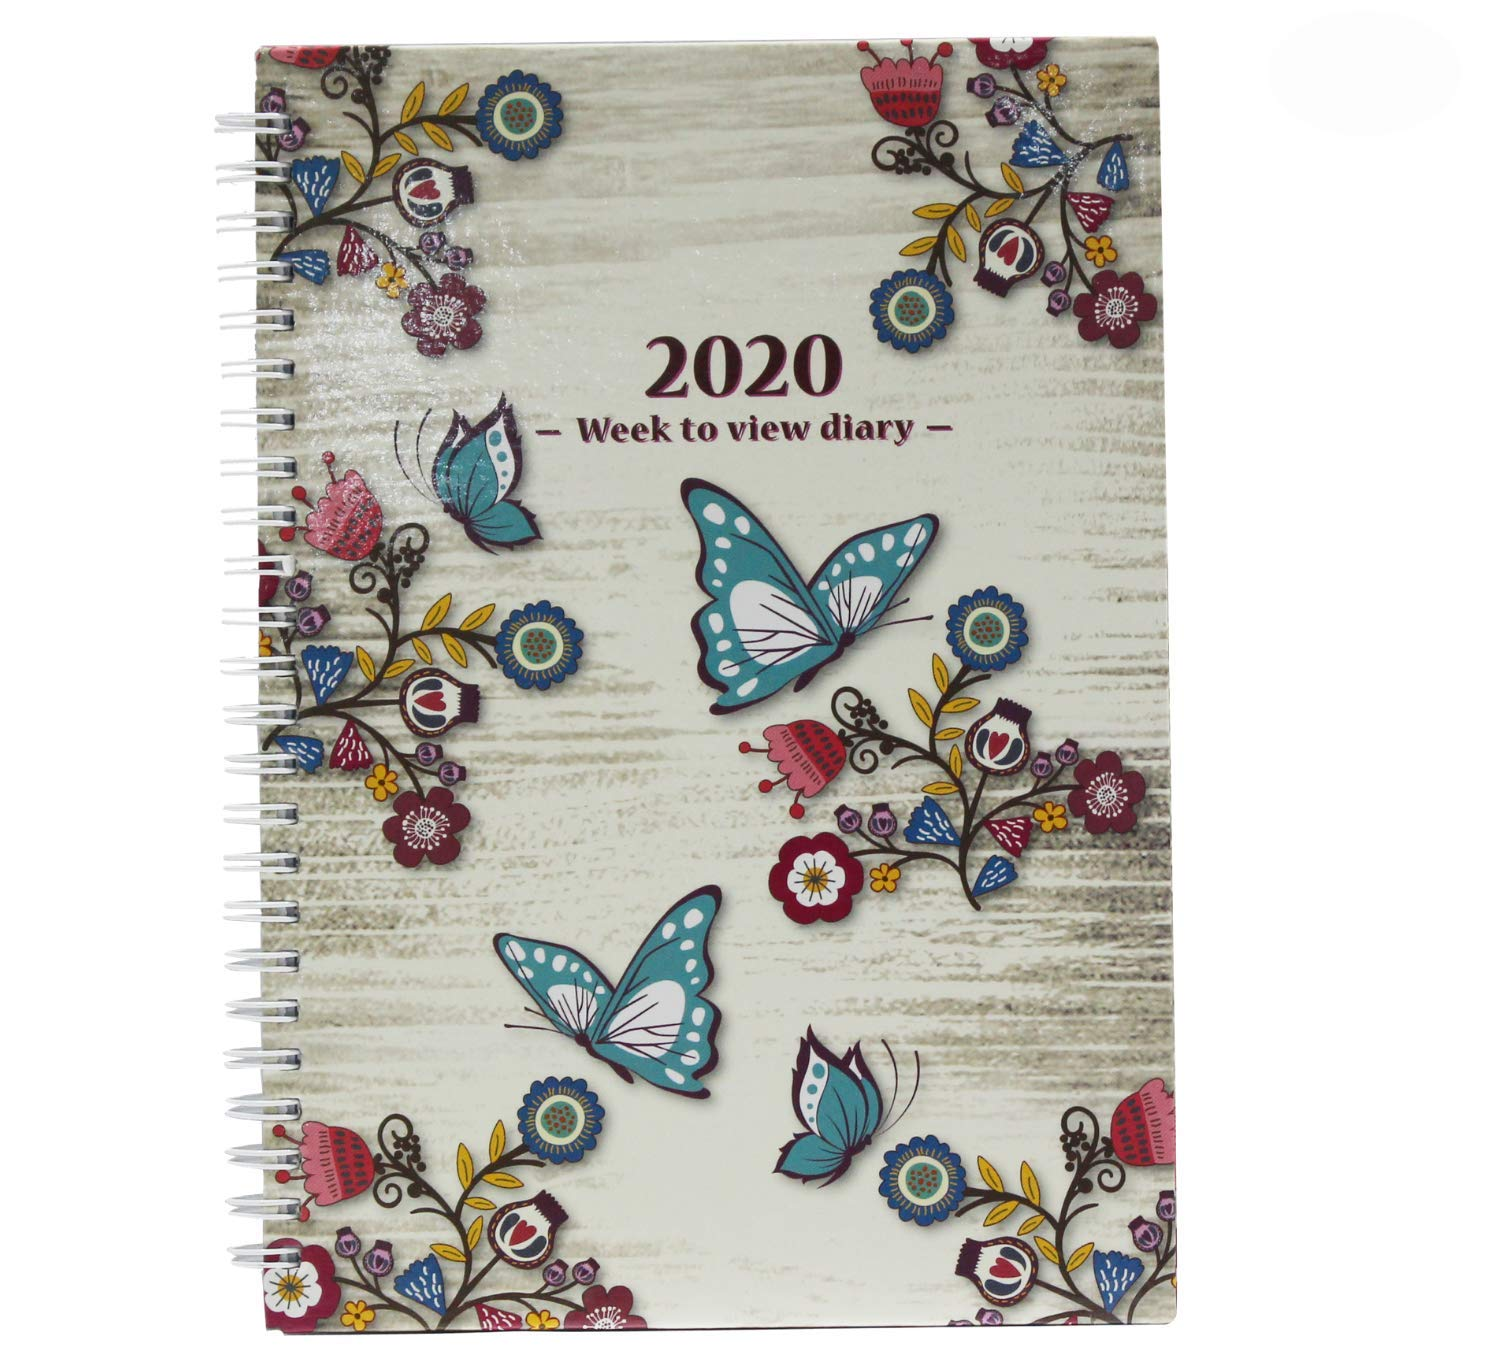 2020 A5 Week to View Diary Vintage Design Busy Life Agenda Diary by Arpan (Vintage Cream)